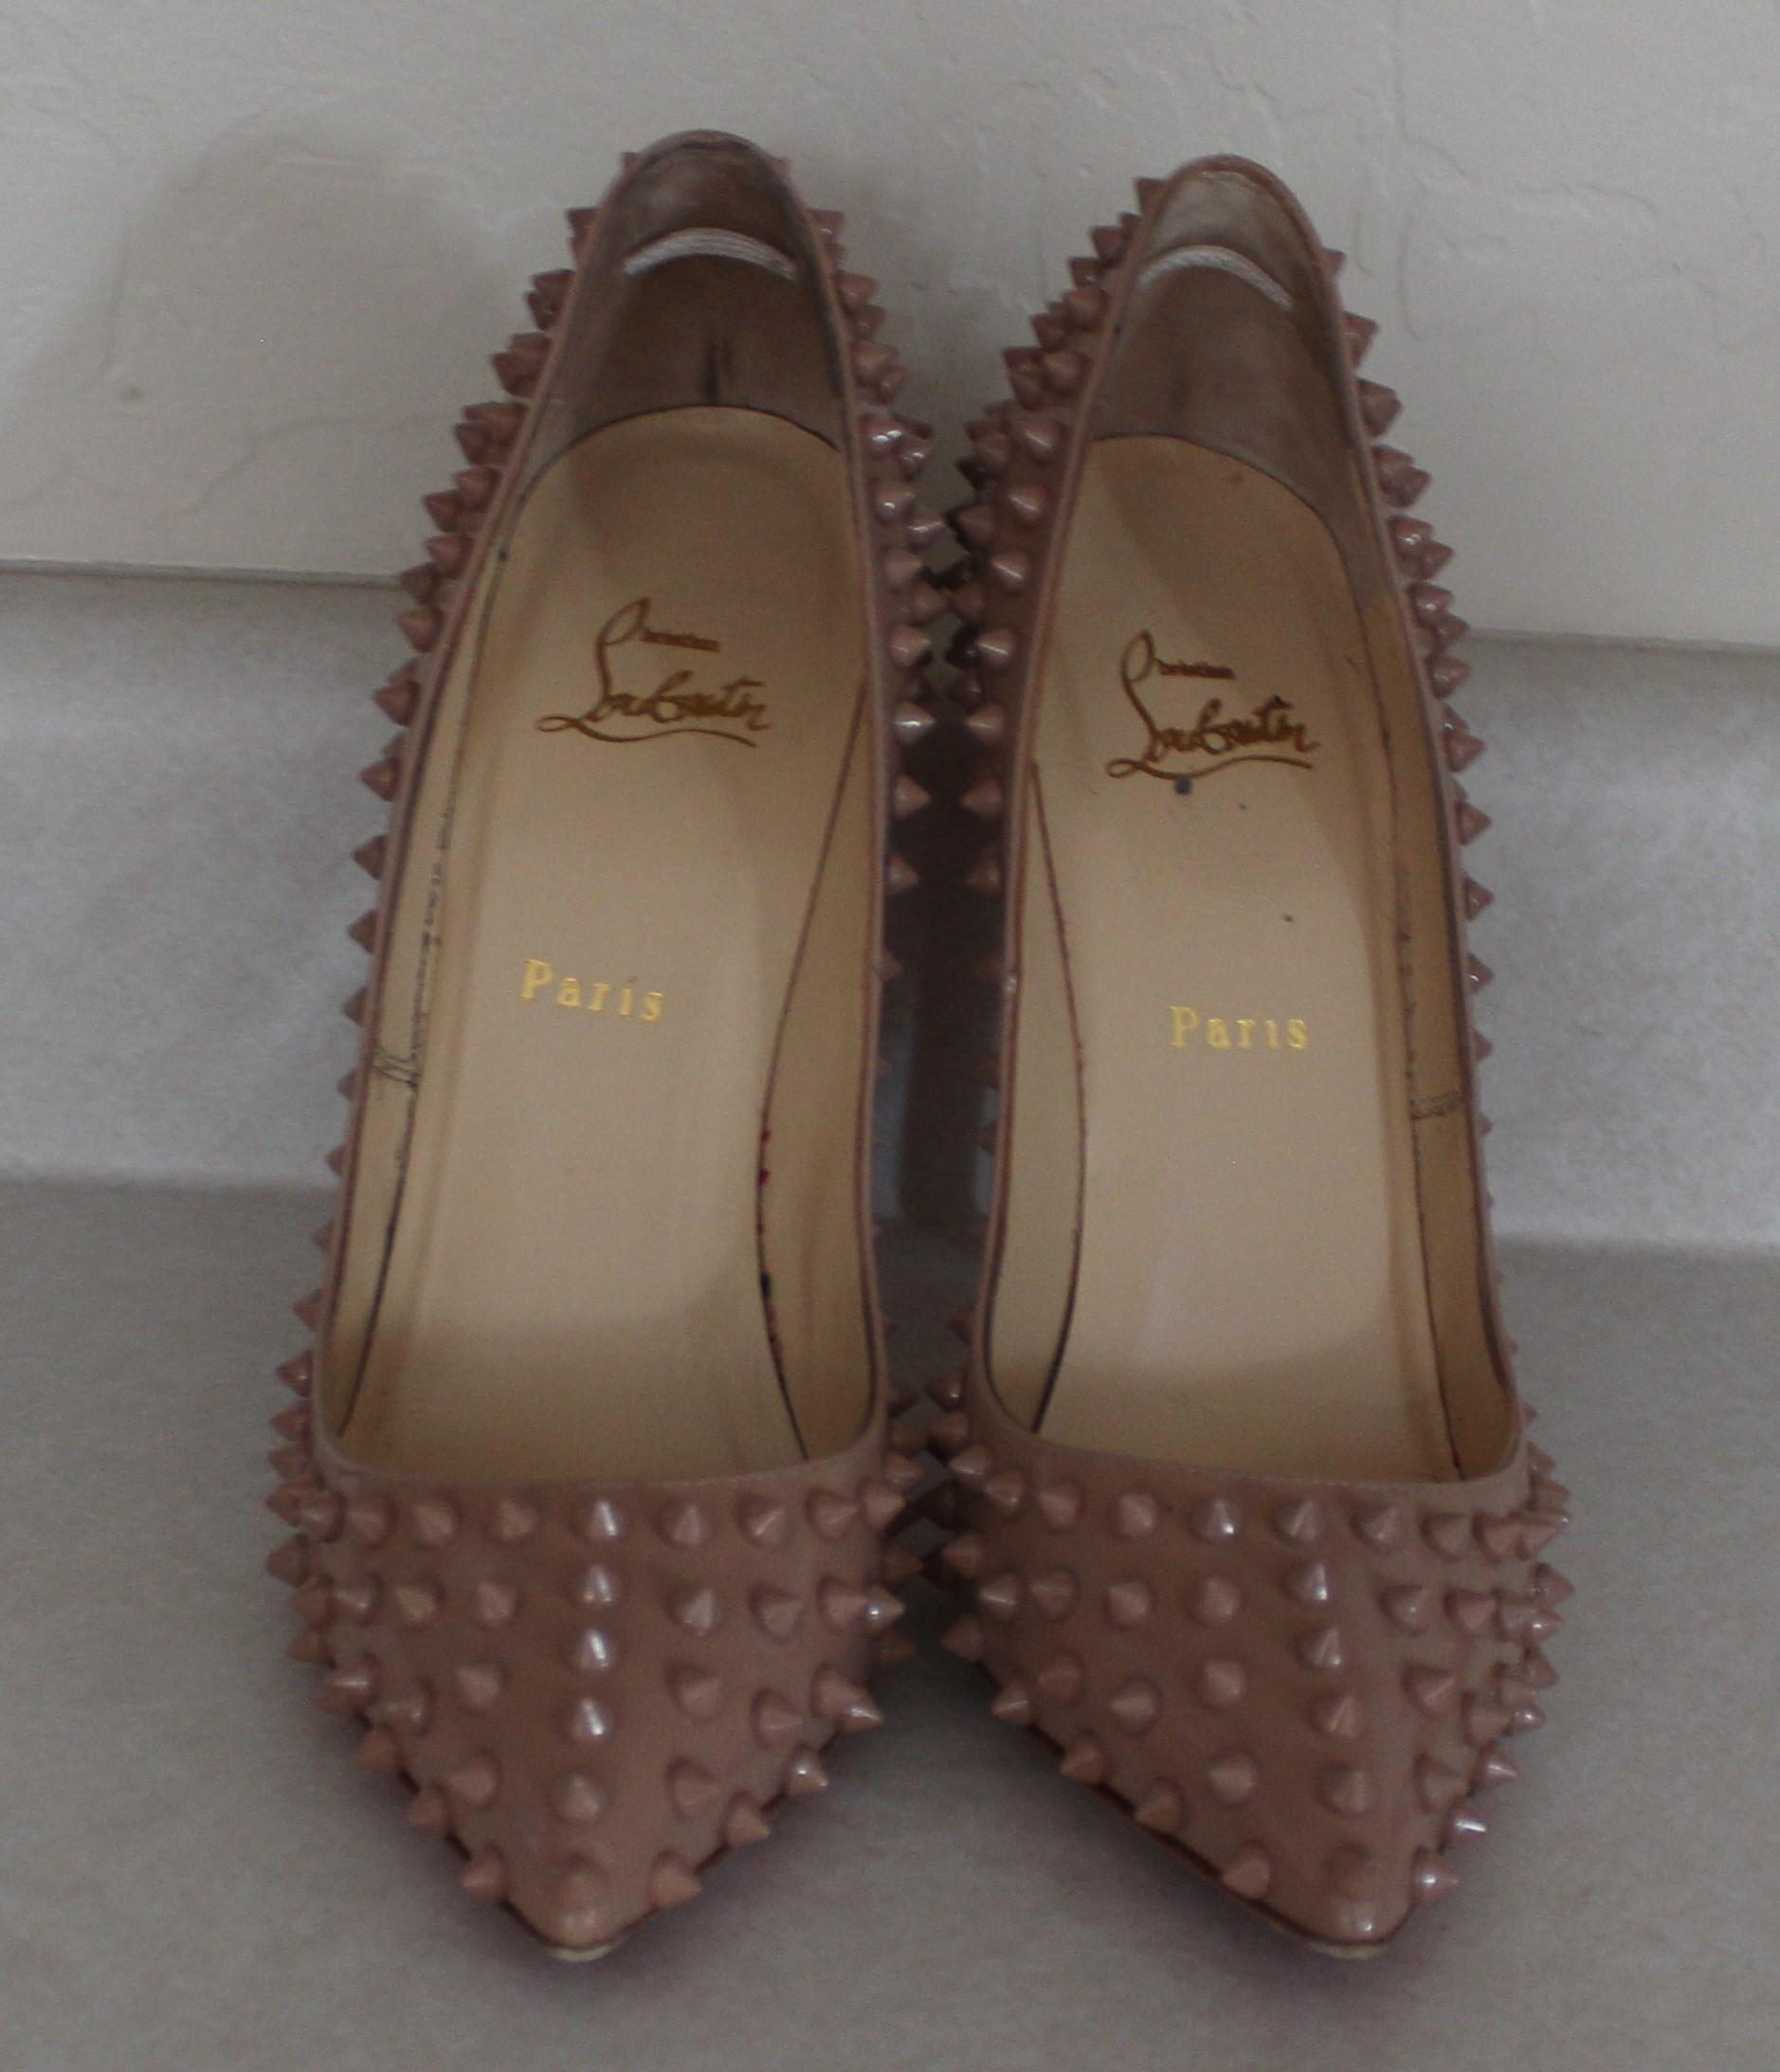 ... Christian Louboutin Beige Patent Leather Pointed Toe Pigalle Spike  Spike Spike 38.5 Pumps Size US 8.5 ...